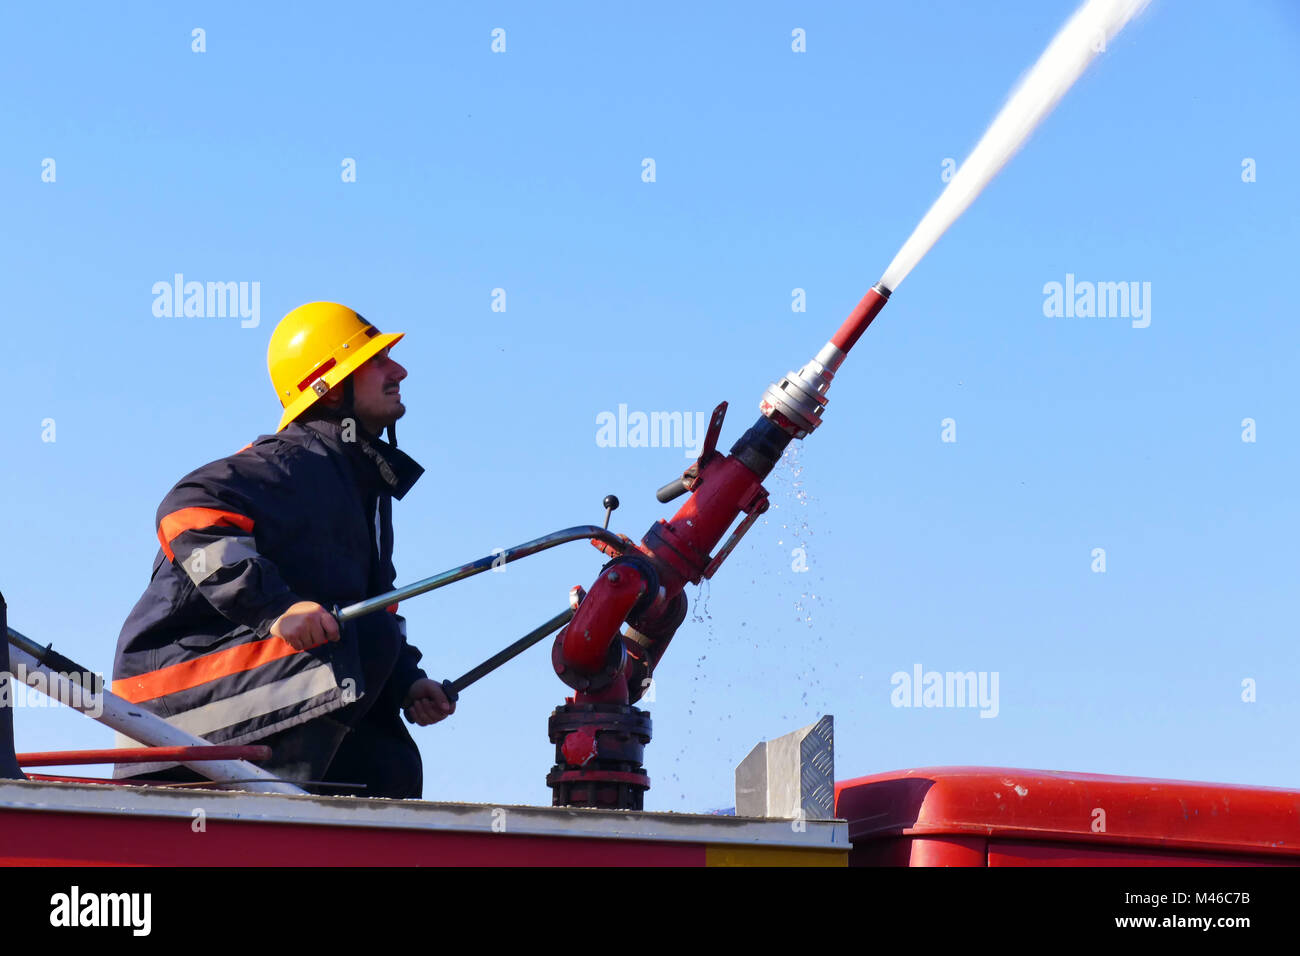 Firefighter with a water cannon - Stock Image